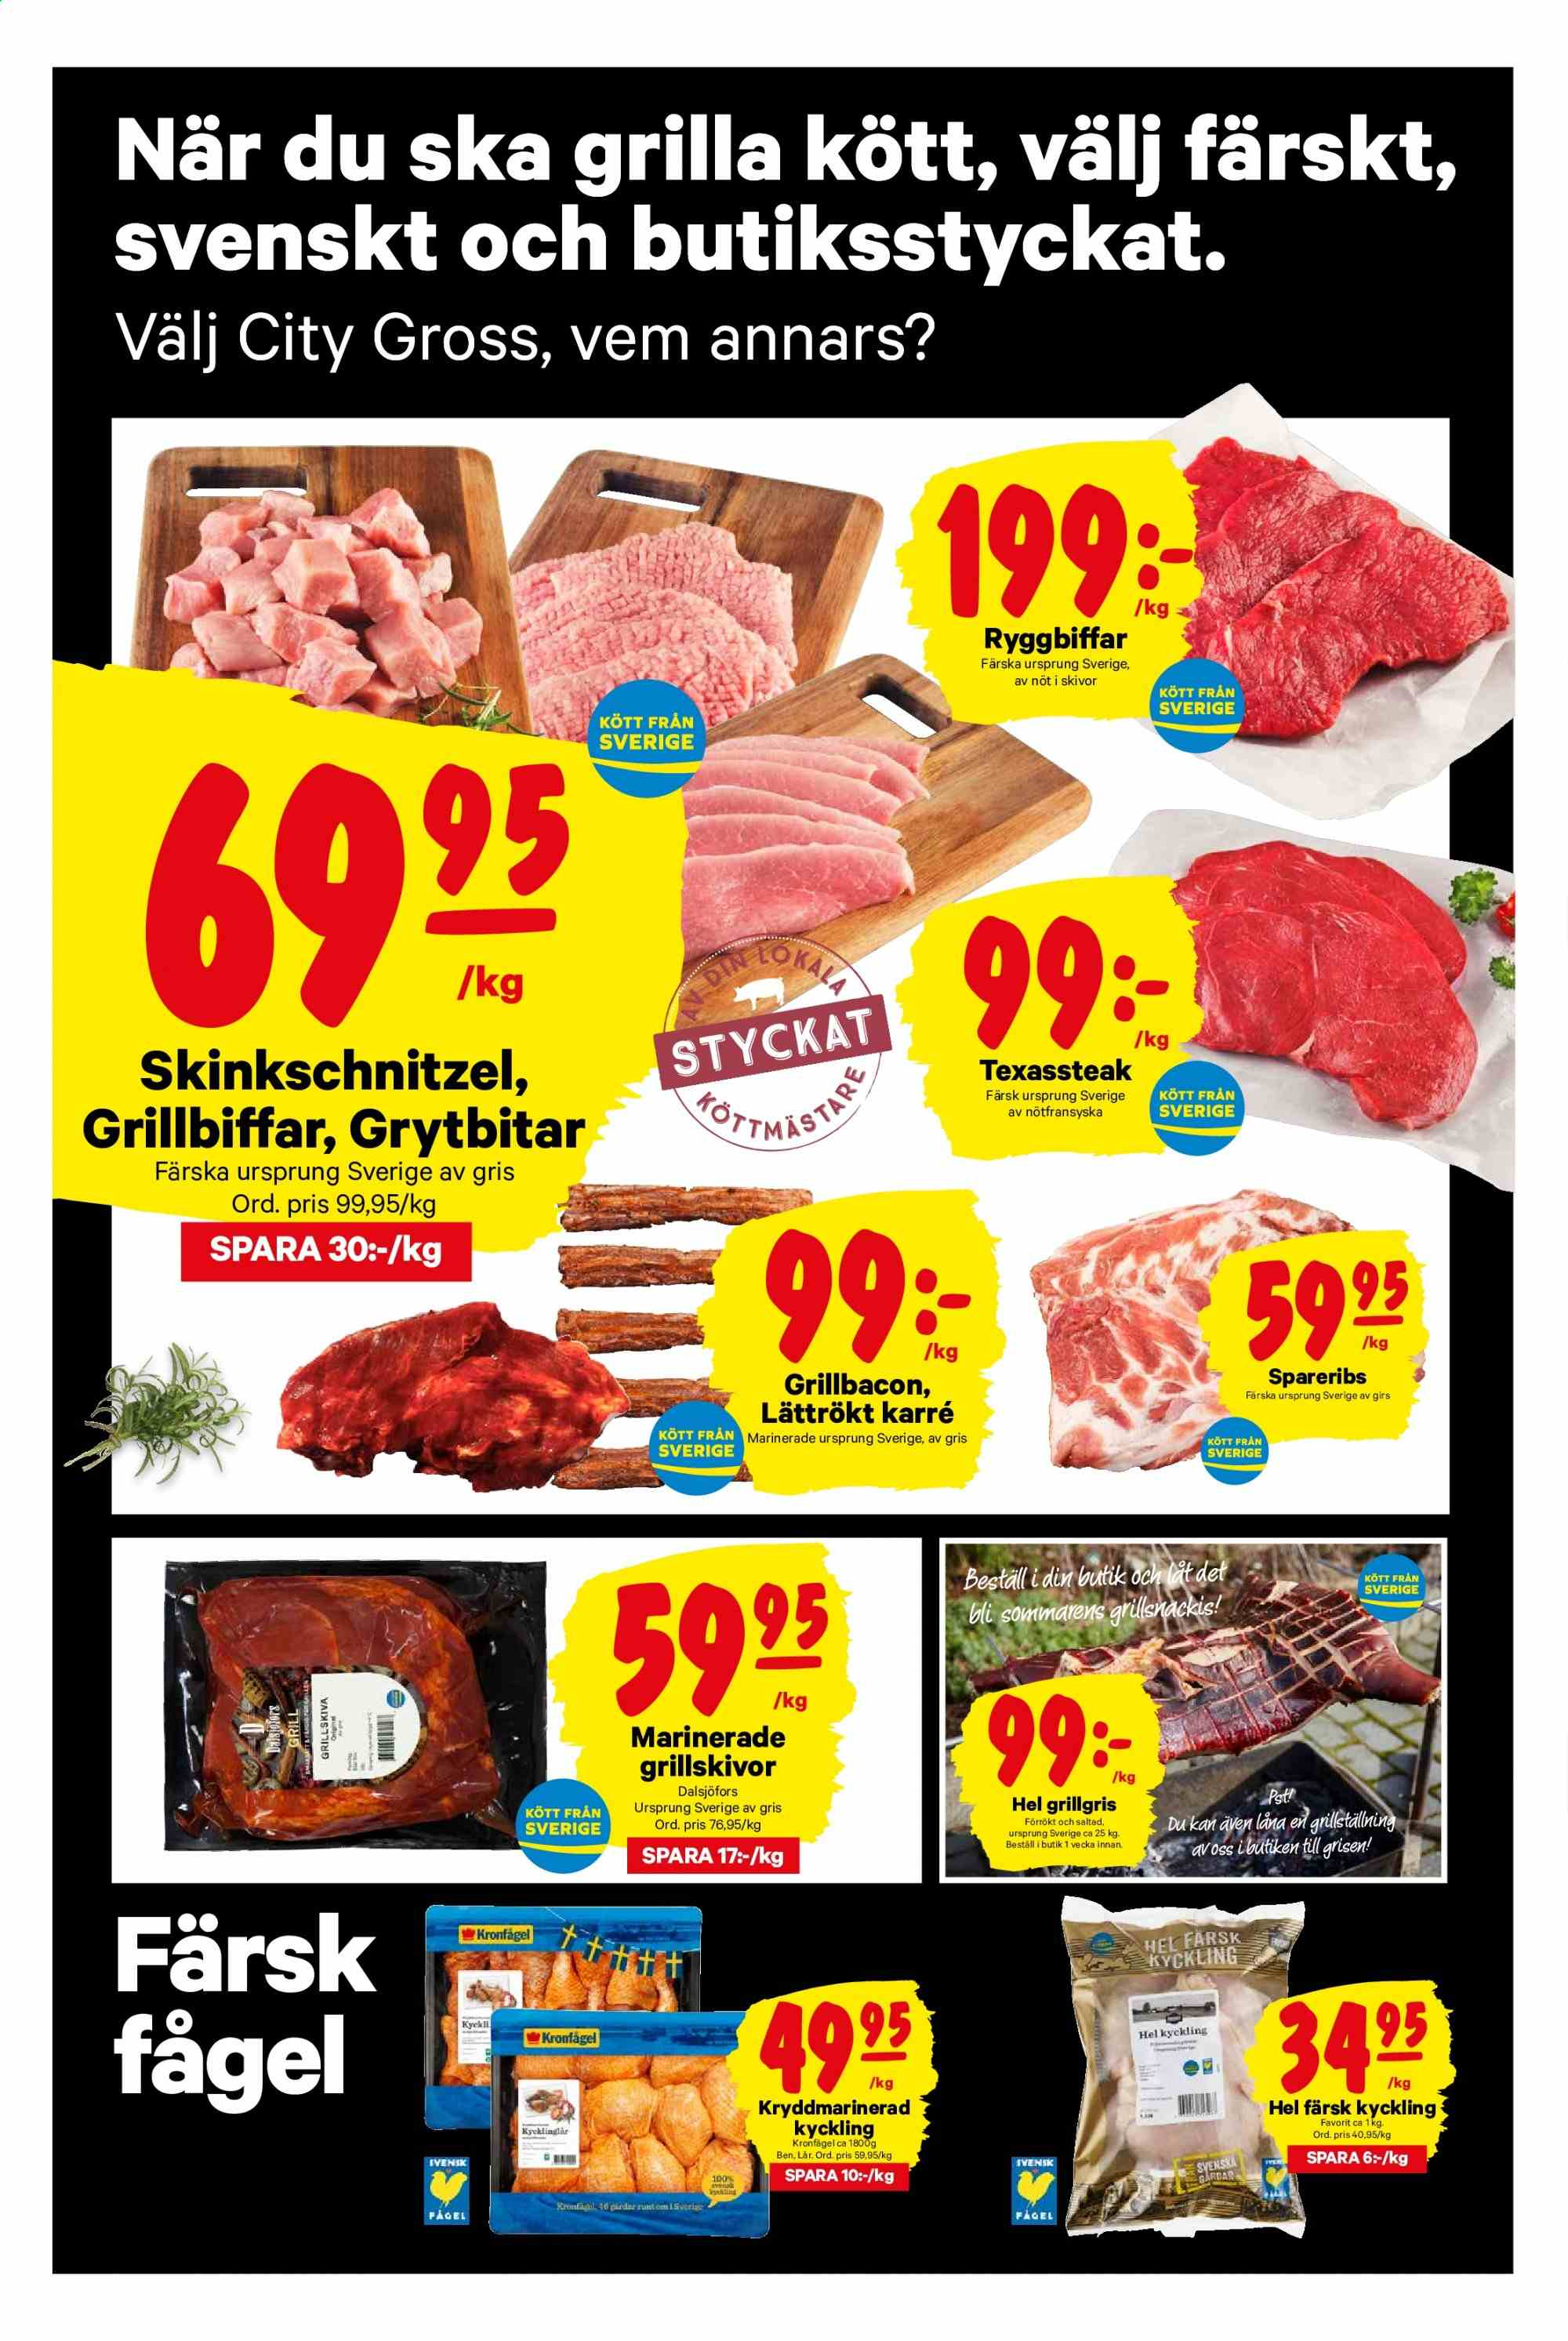 City Gross reklamblad - 15/7 2019 - 21/7 2019. Sida 2.